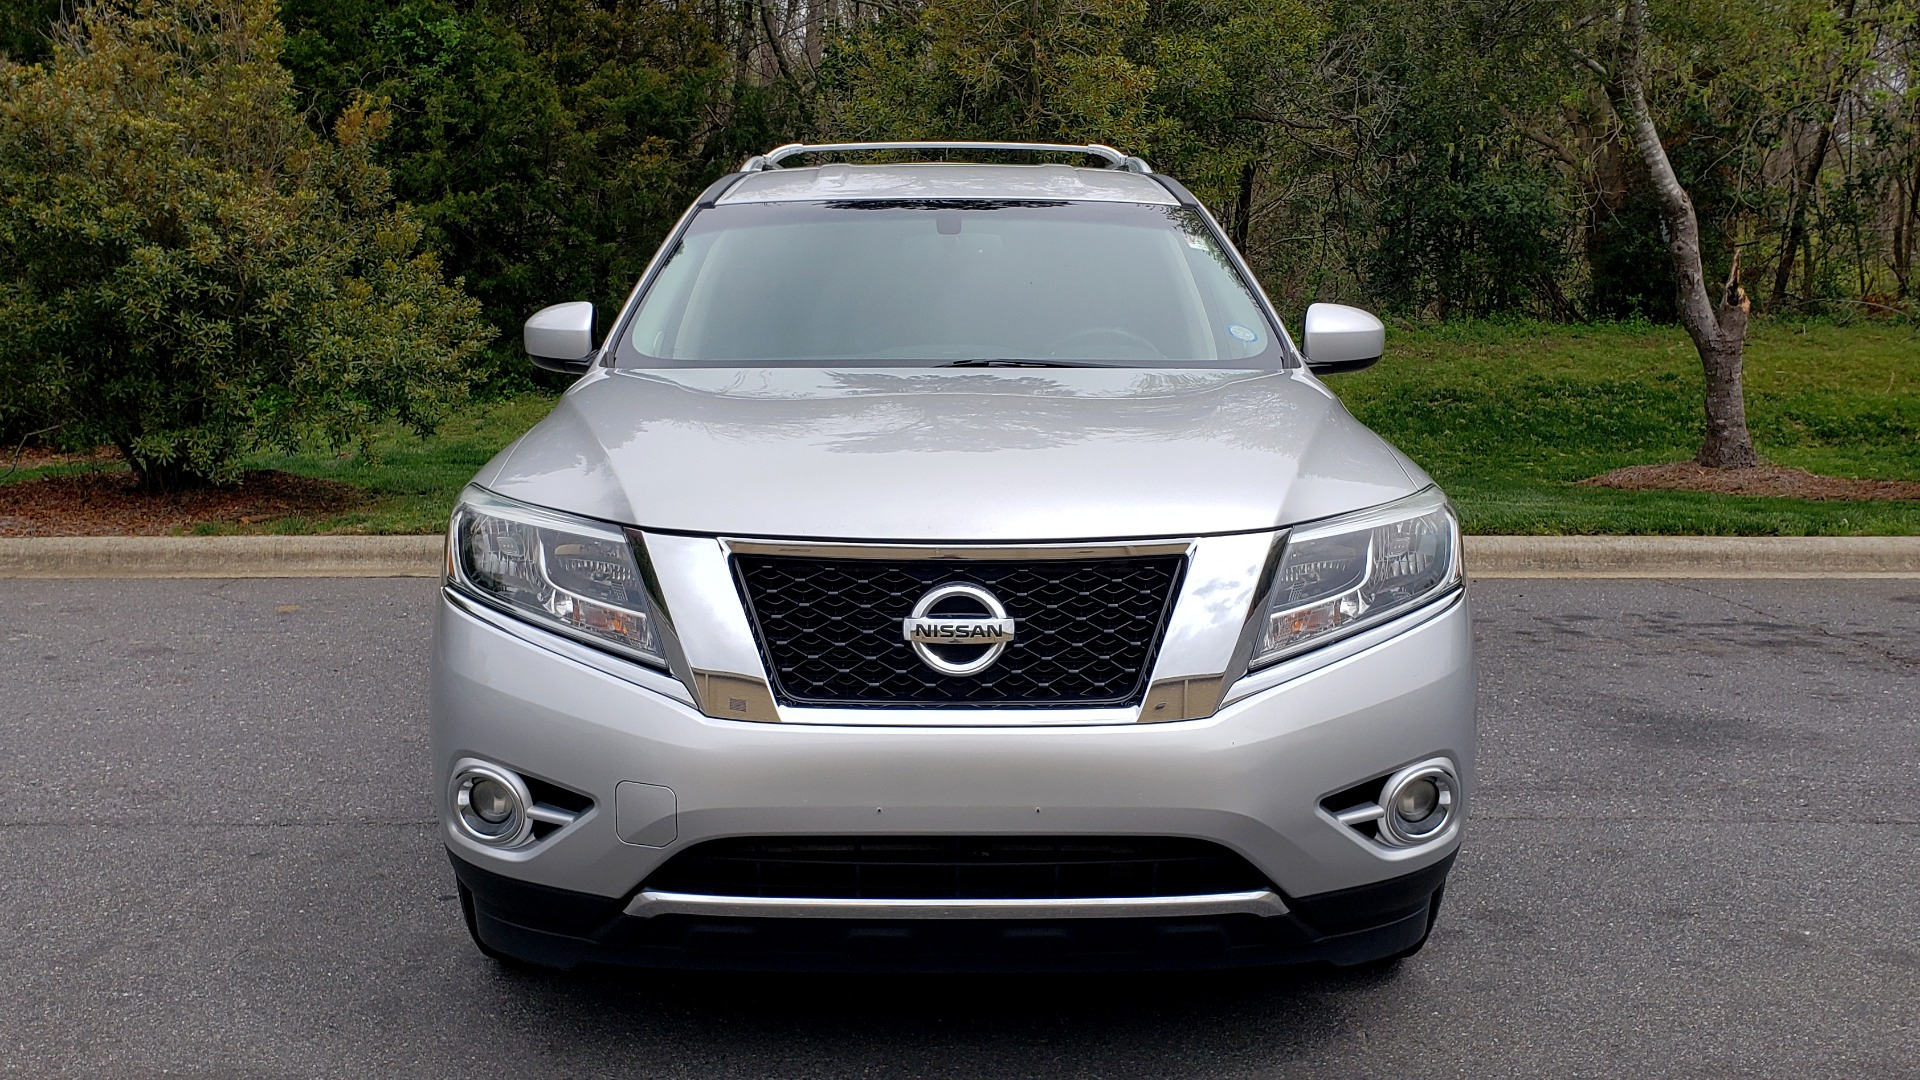 Used 2014 Nissan PATHFINDER SL TECH PKG / 4WD / NAV / SUNROOF / REARVIEW / 3-ROW for sale Sold at Formula Imports in Charlotte NC 28227 23